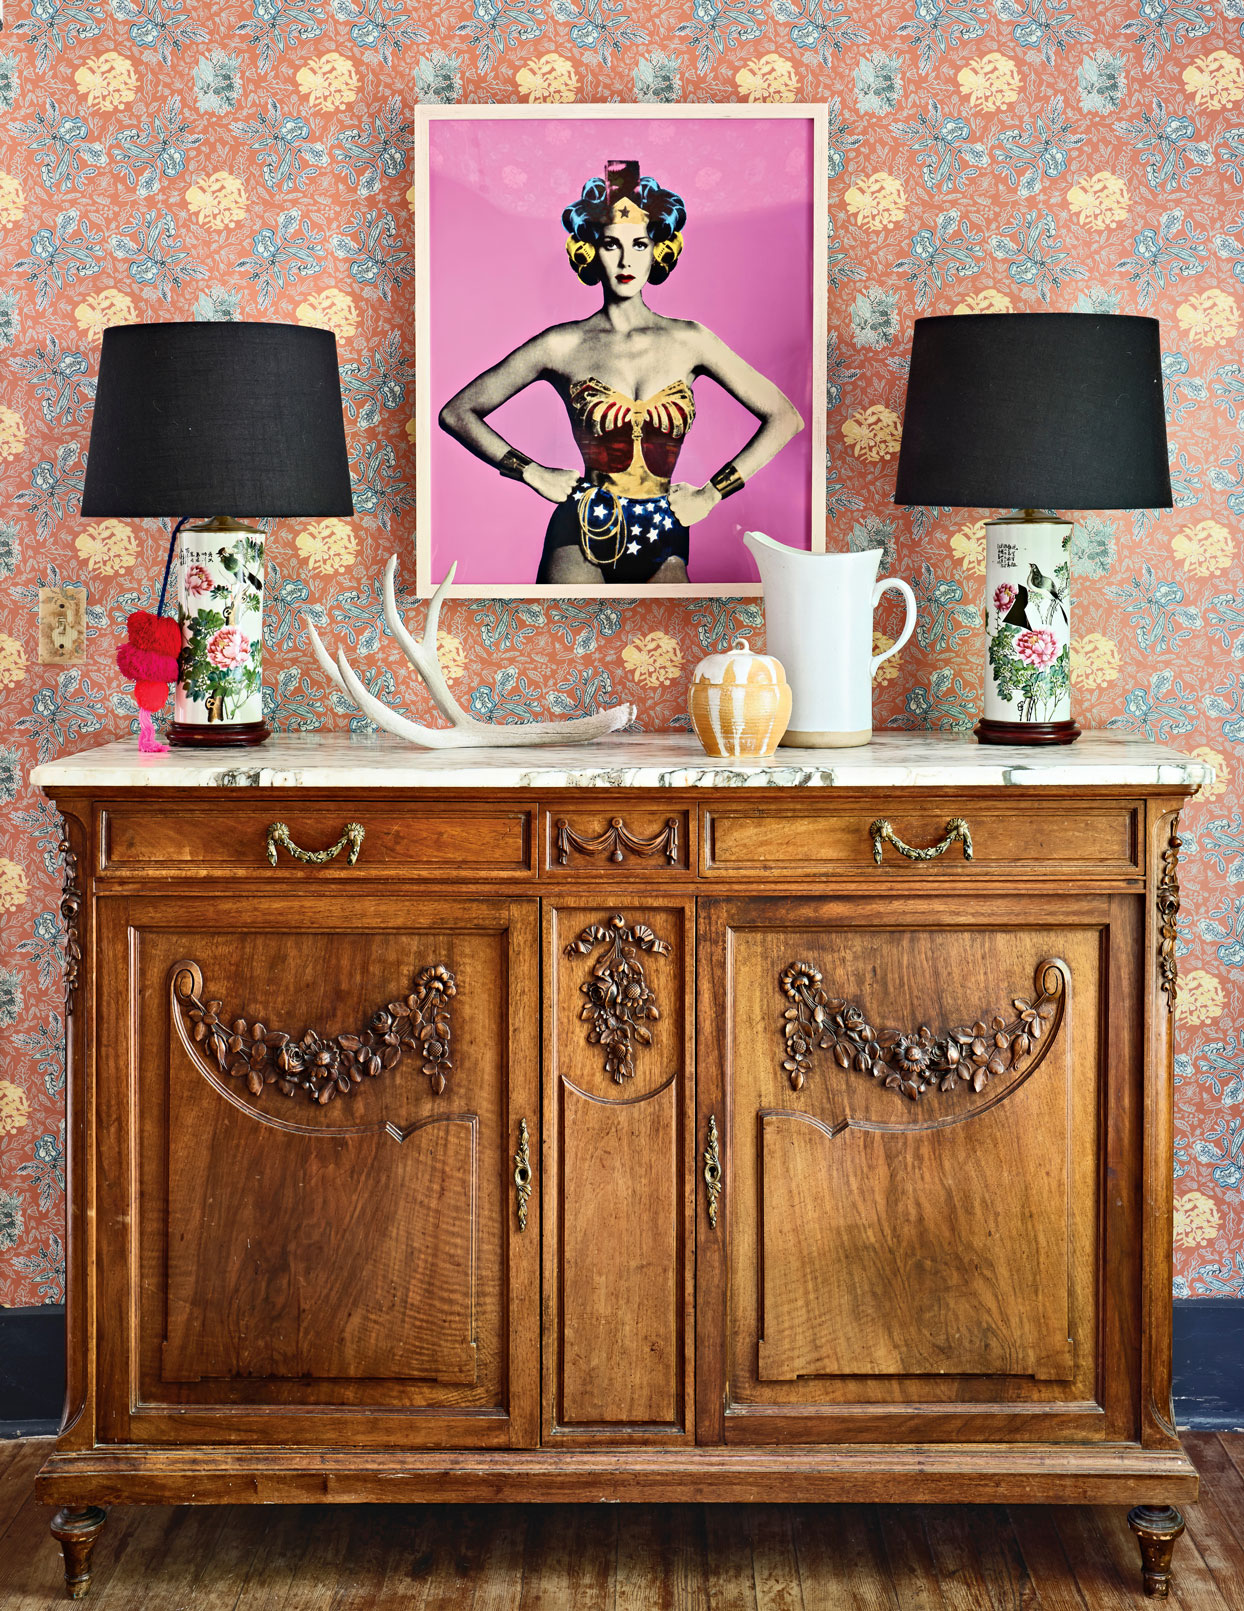 buffet with lamps under wonder woman print